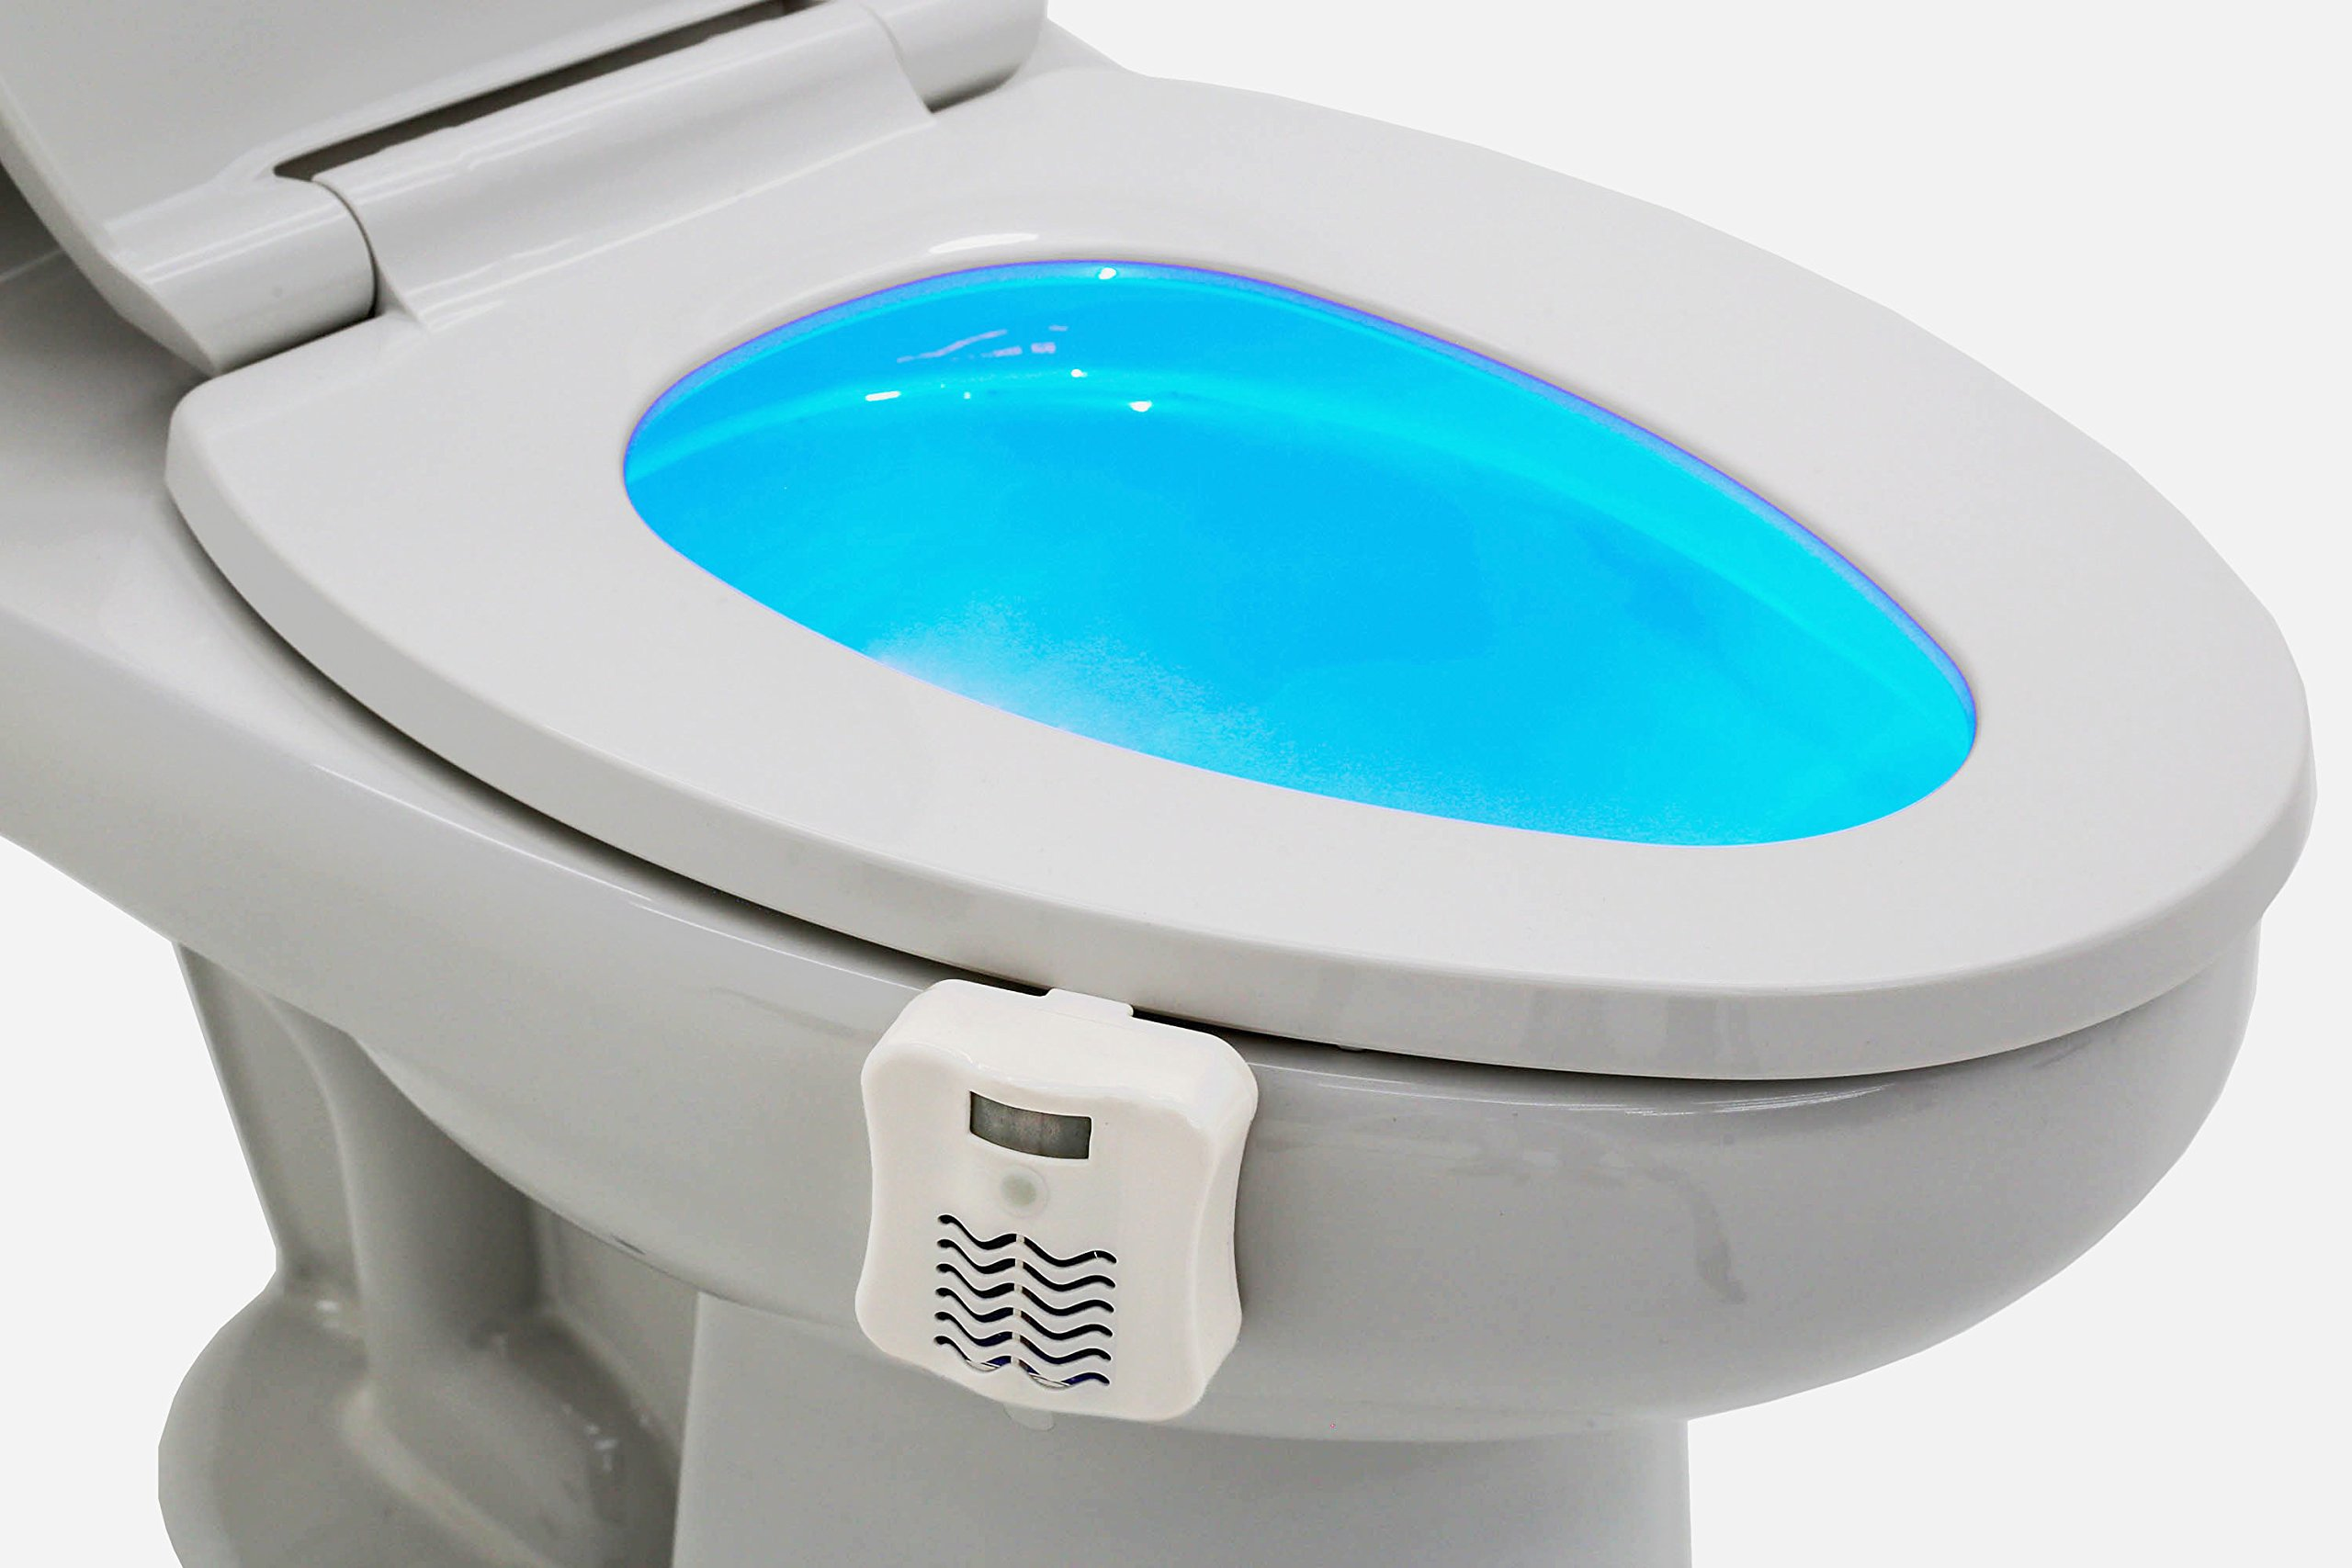 GlowBowl Fresh - Motion Activated Toilet NightLight w/Air Freshener - Version 2 Longer Lasting by Glow Bowl